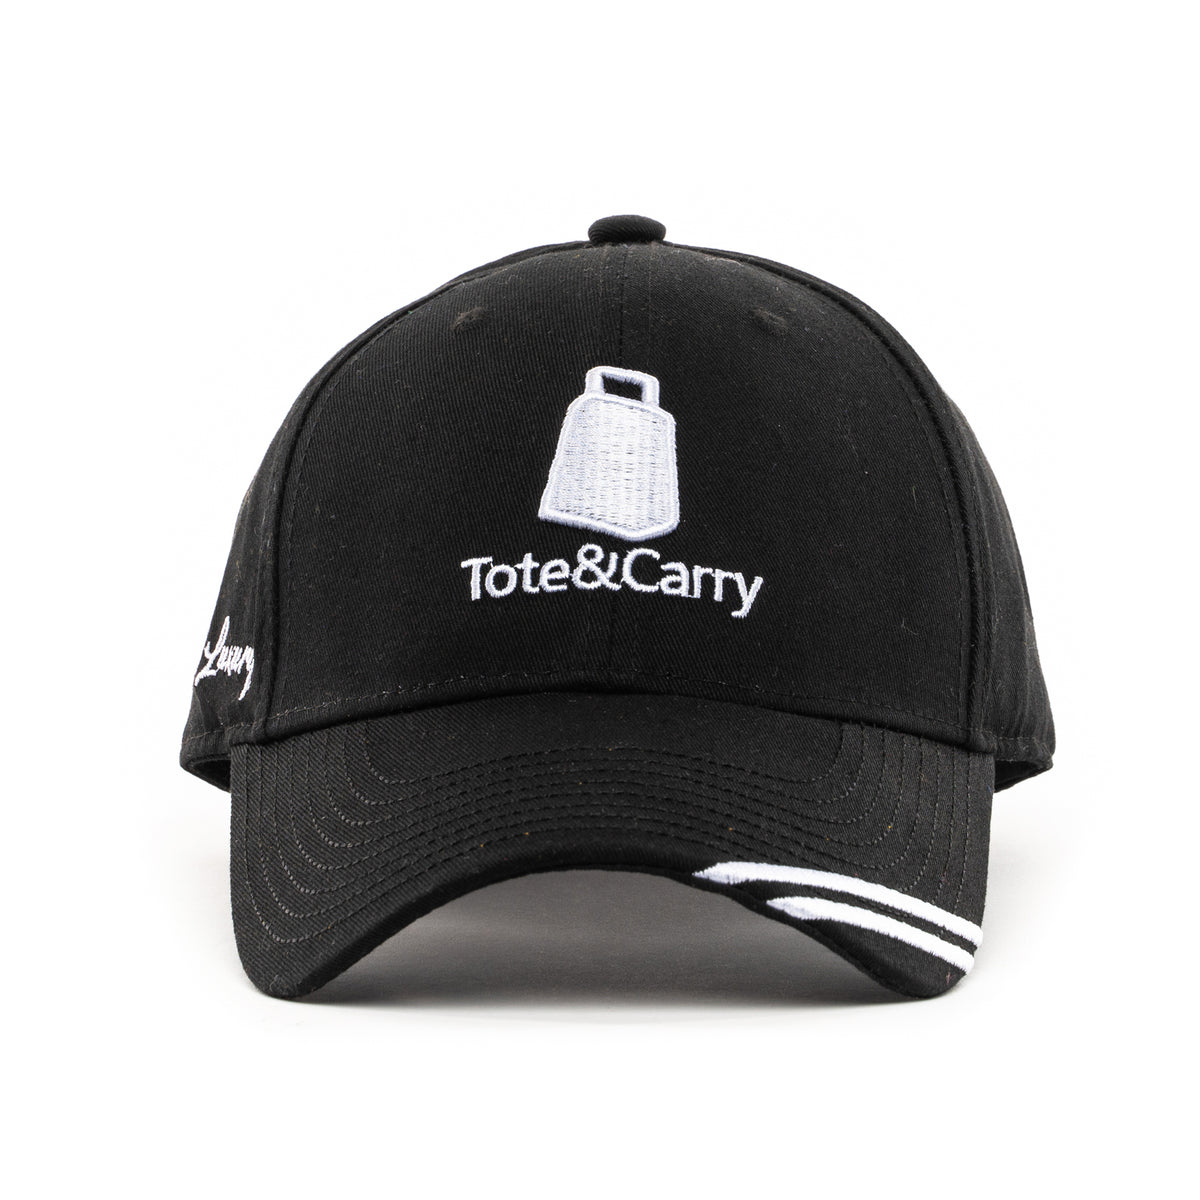 Tote&Carry Black Curved Baseball Cap - Tote&Carry